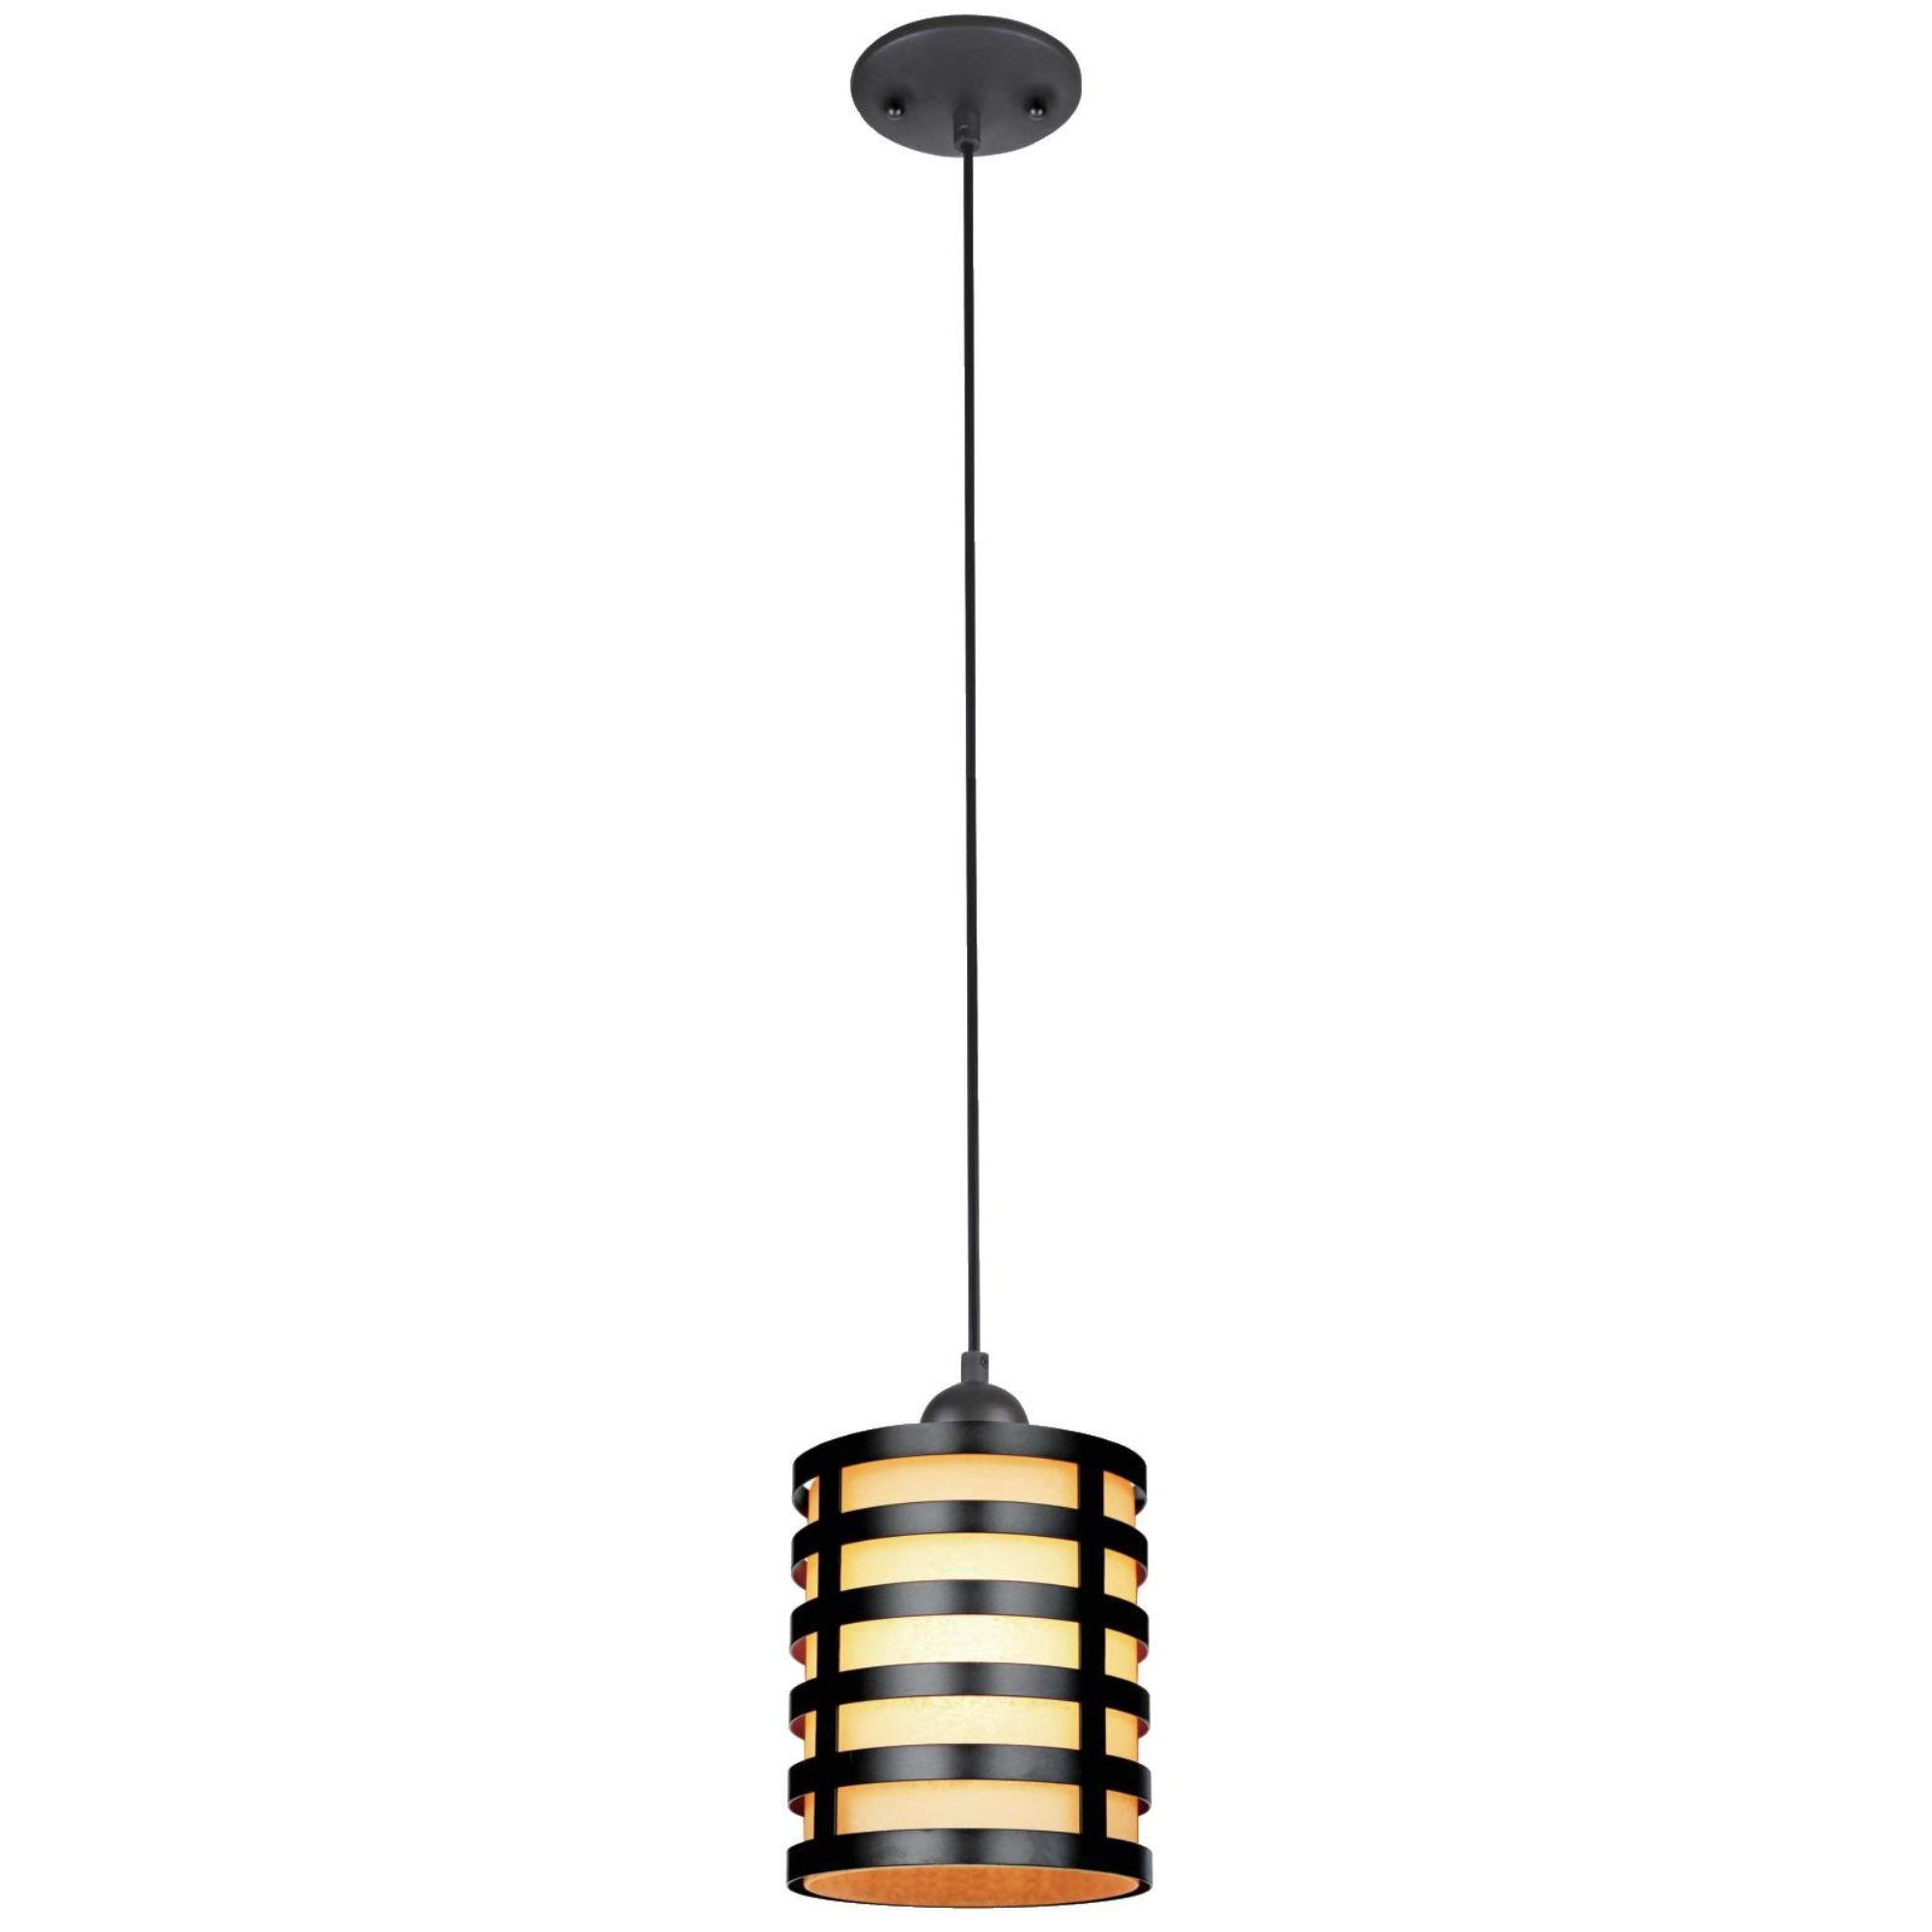 Westinghouse 6000400 Casual One-Light Adjustable Mini Pendant with Oil Rubbed Bronze and Amber Glass Shade, Oil Rubbed Bronze Finish